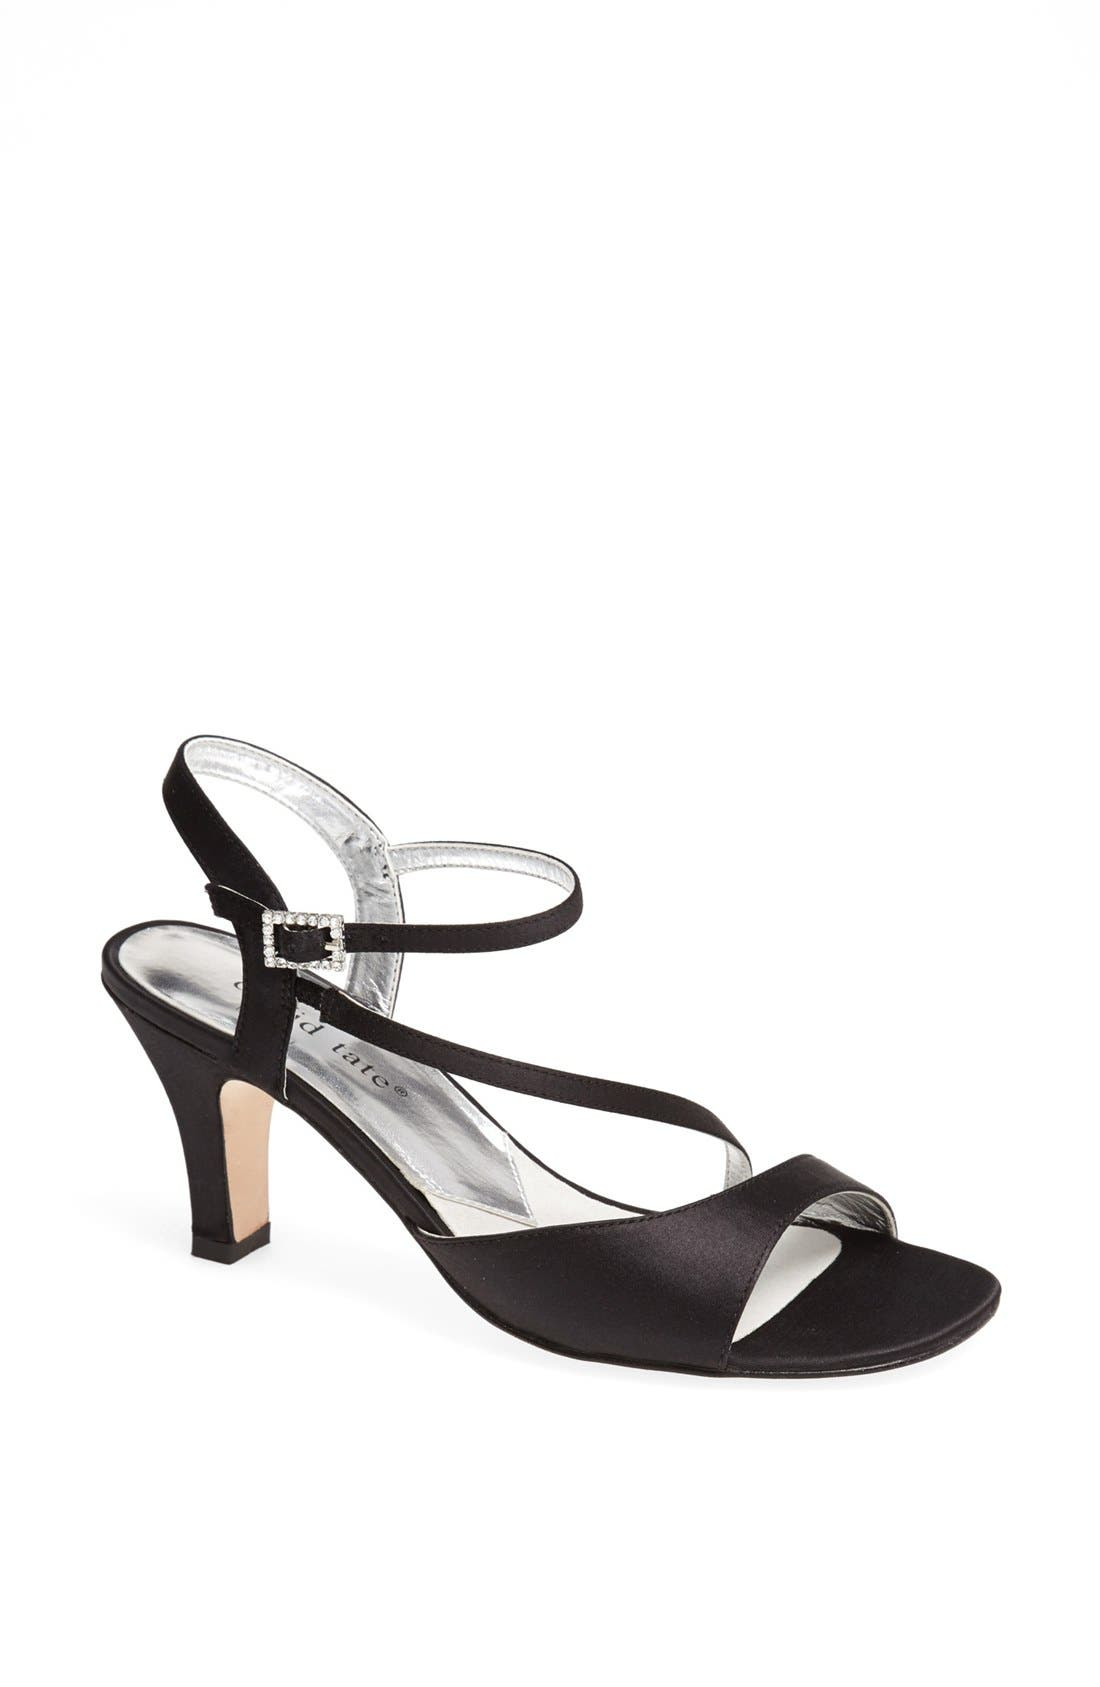 Main Image - David Tate 'Beverly' Sandal